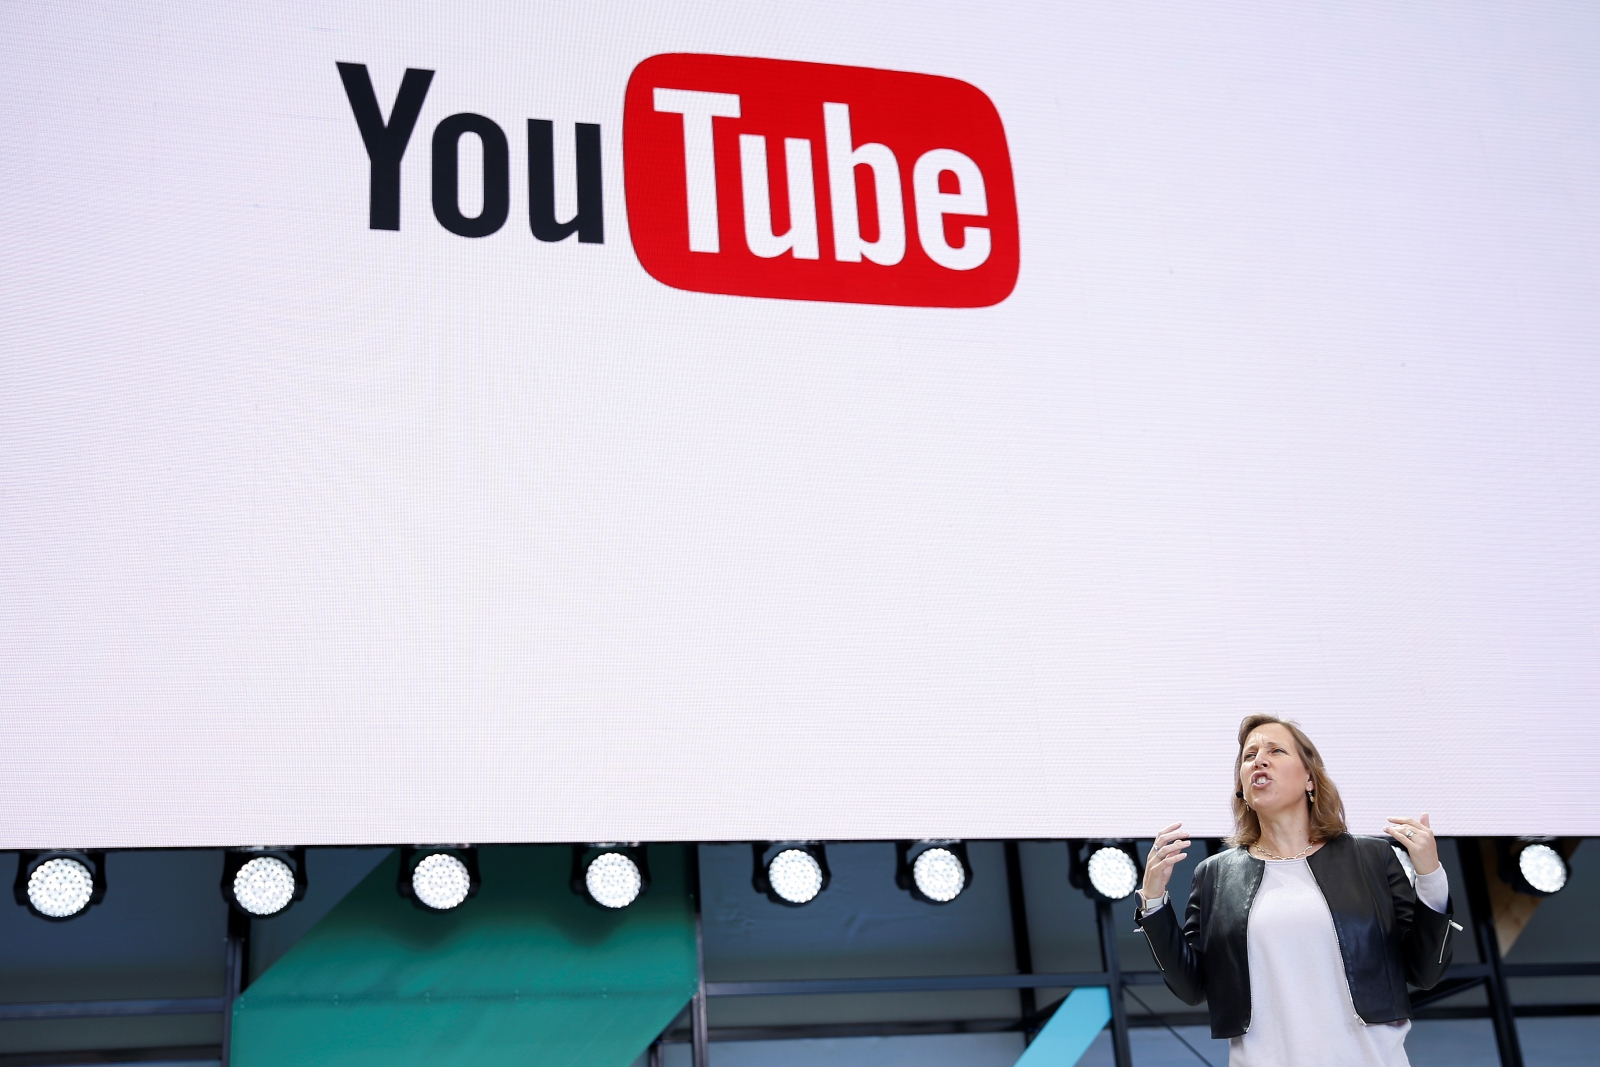 YouTube has 1.5 billion monthly viewers